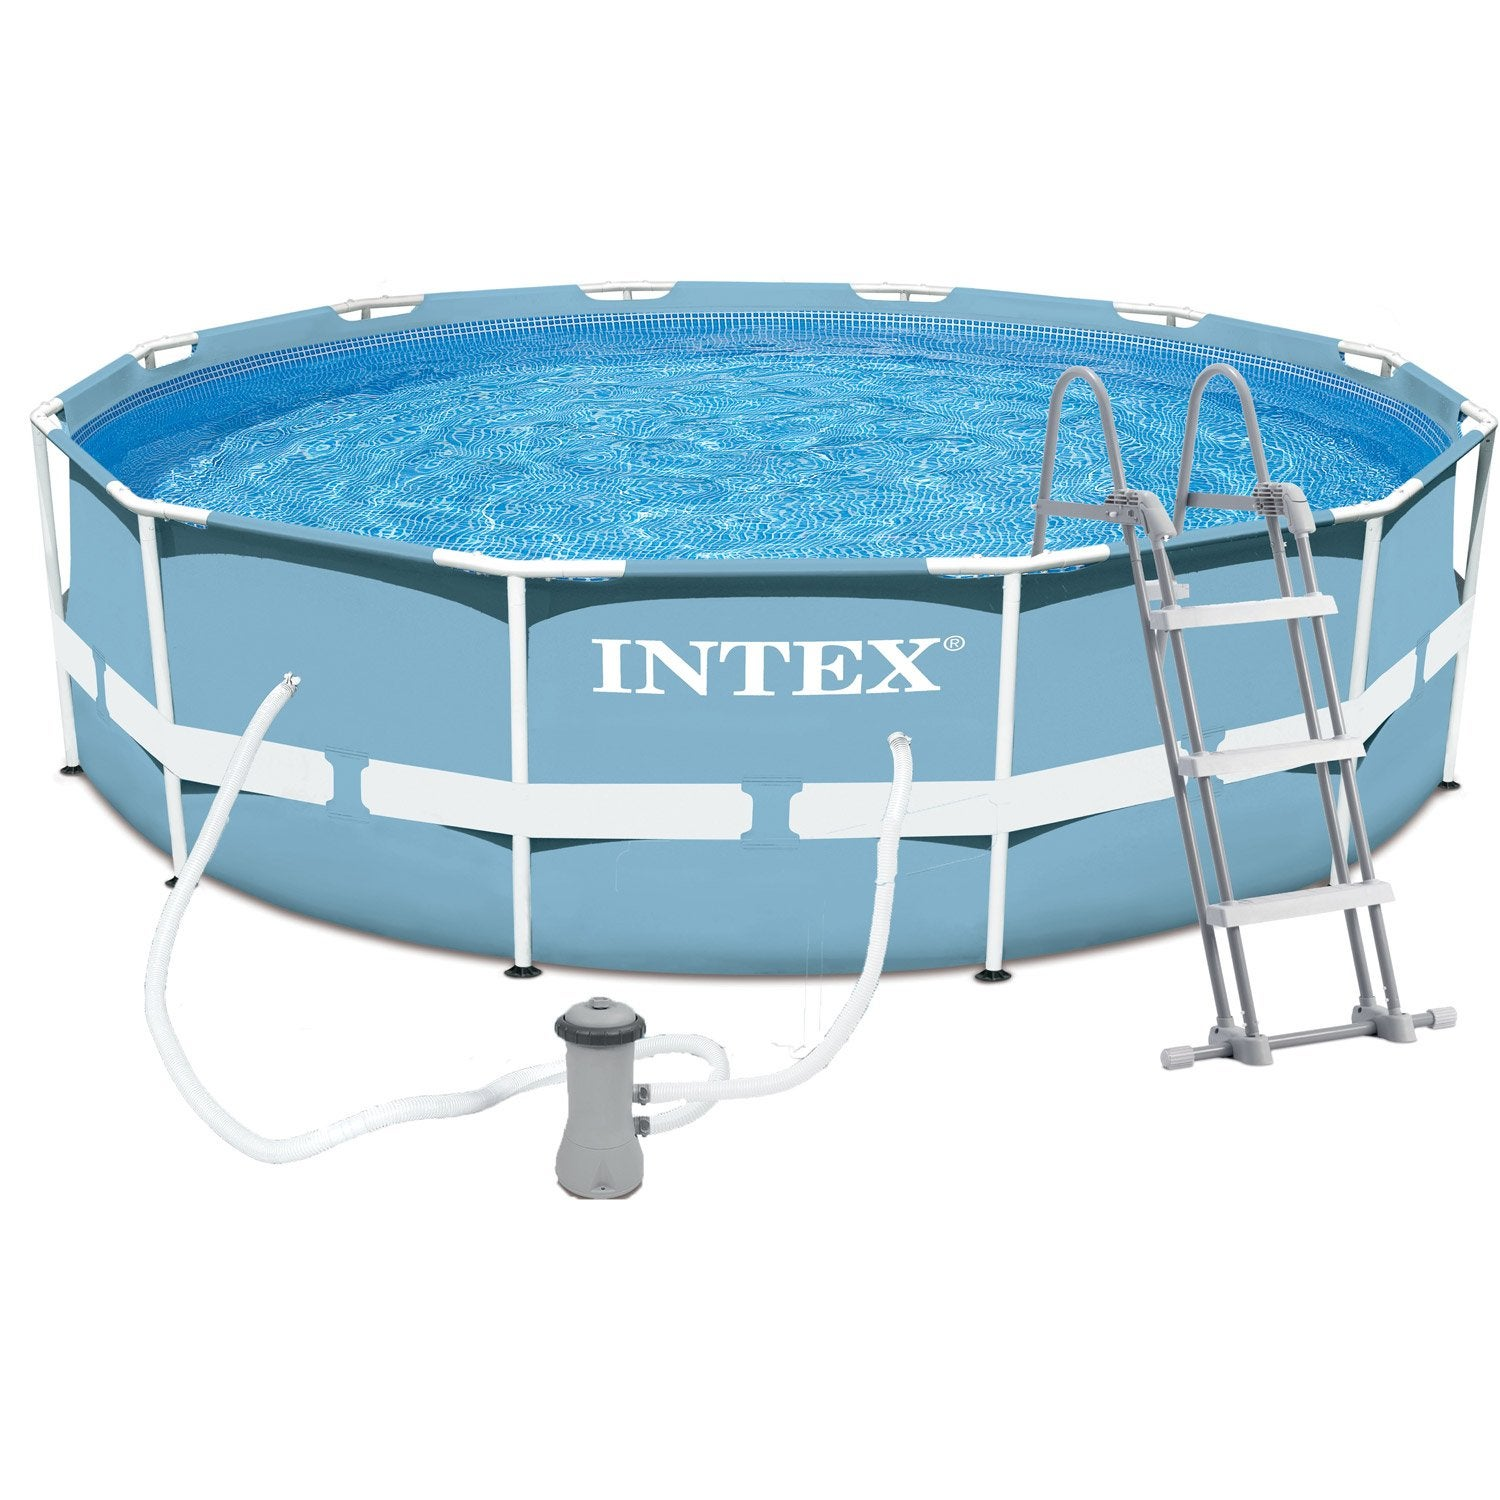 Piscine hors sol autoportante tubulaire prism frame intex for Piscine hors sol 10x5m